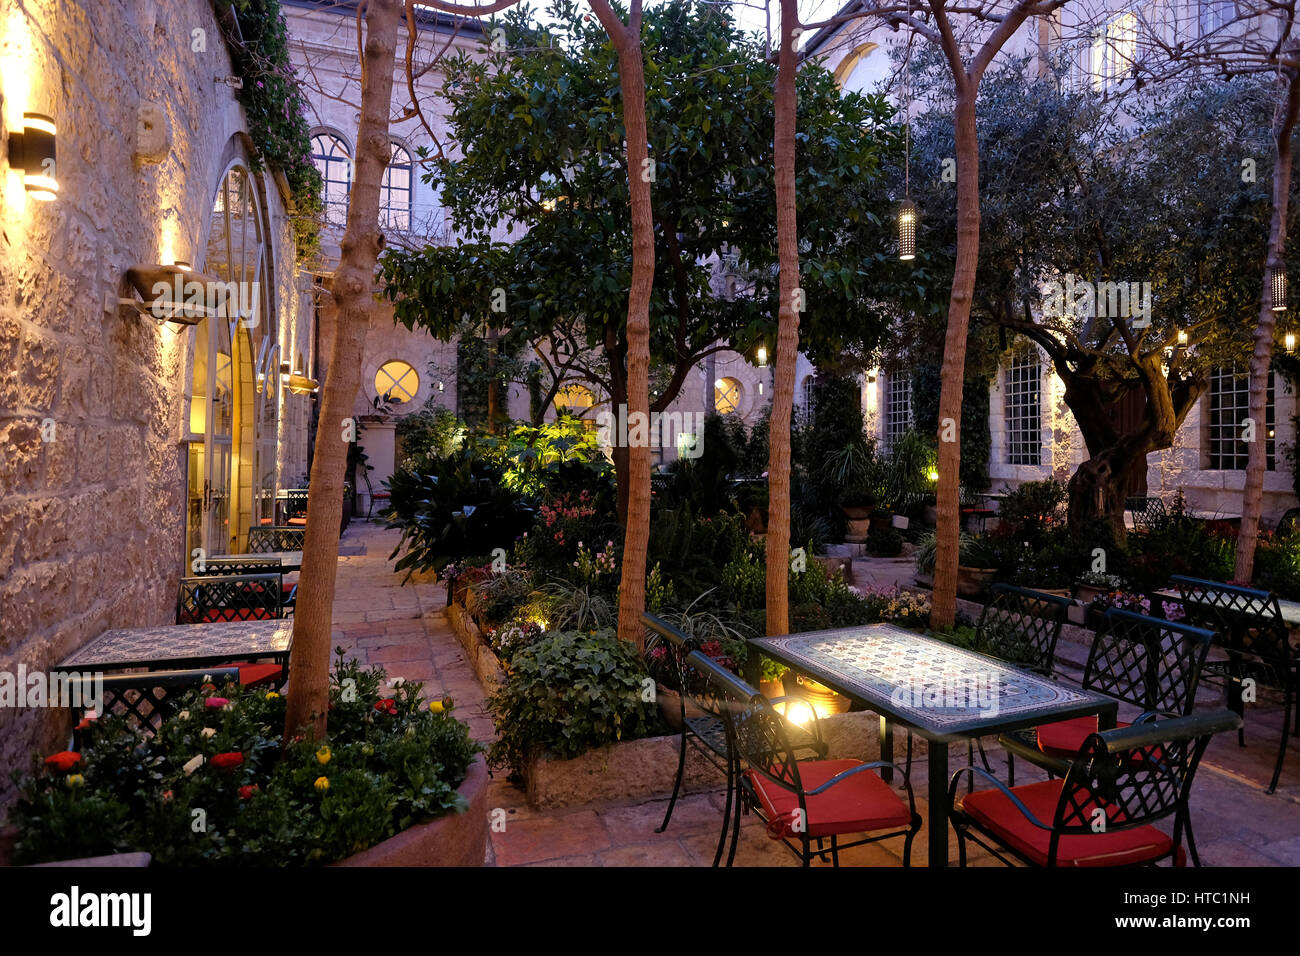 Interior courtyard of the American Colony Hotel located in a historic building which previously housed the utopian Stock Photo